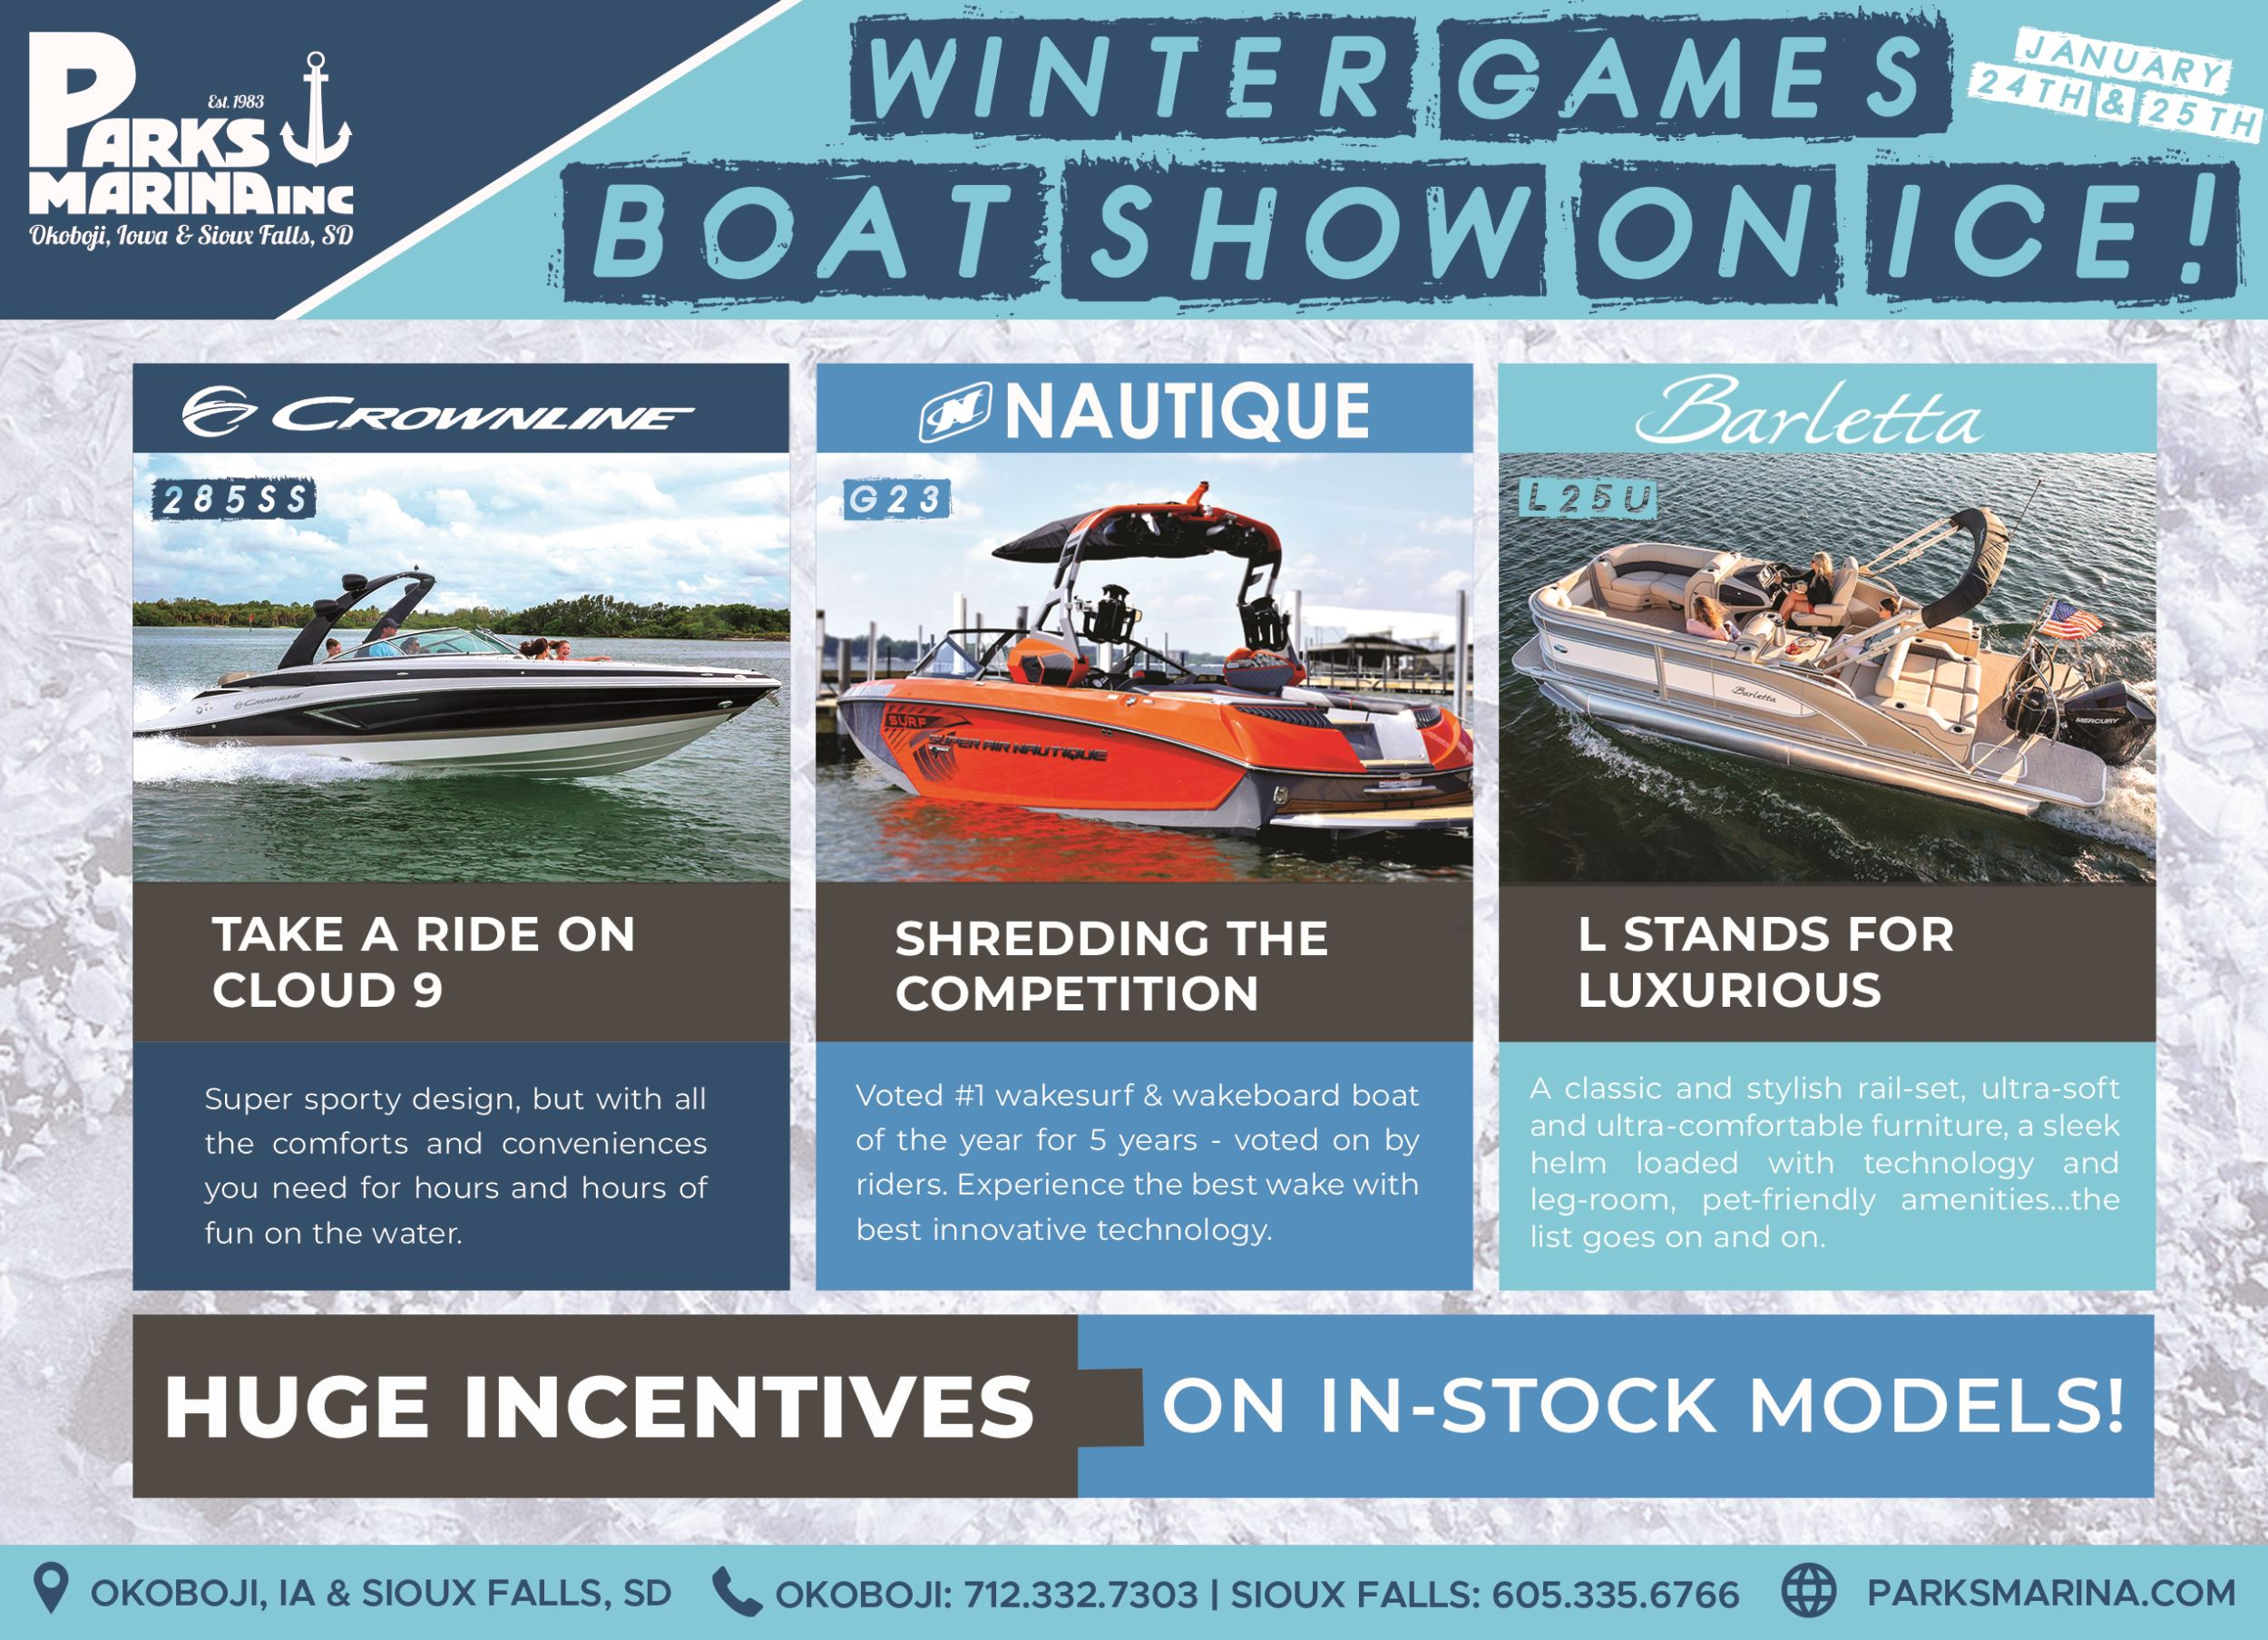 Boats on Ice Boat Show mean big incentives during Winter Games